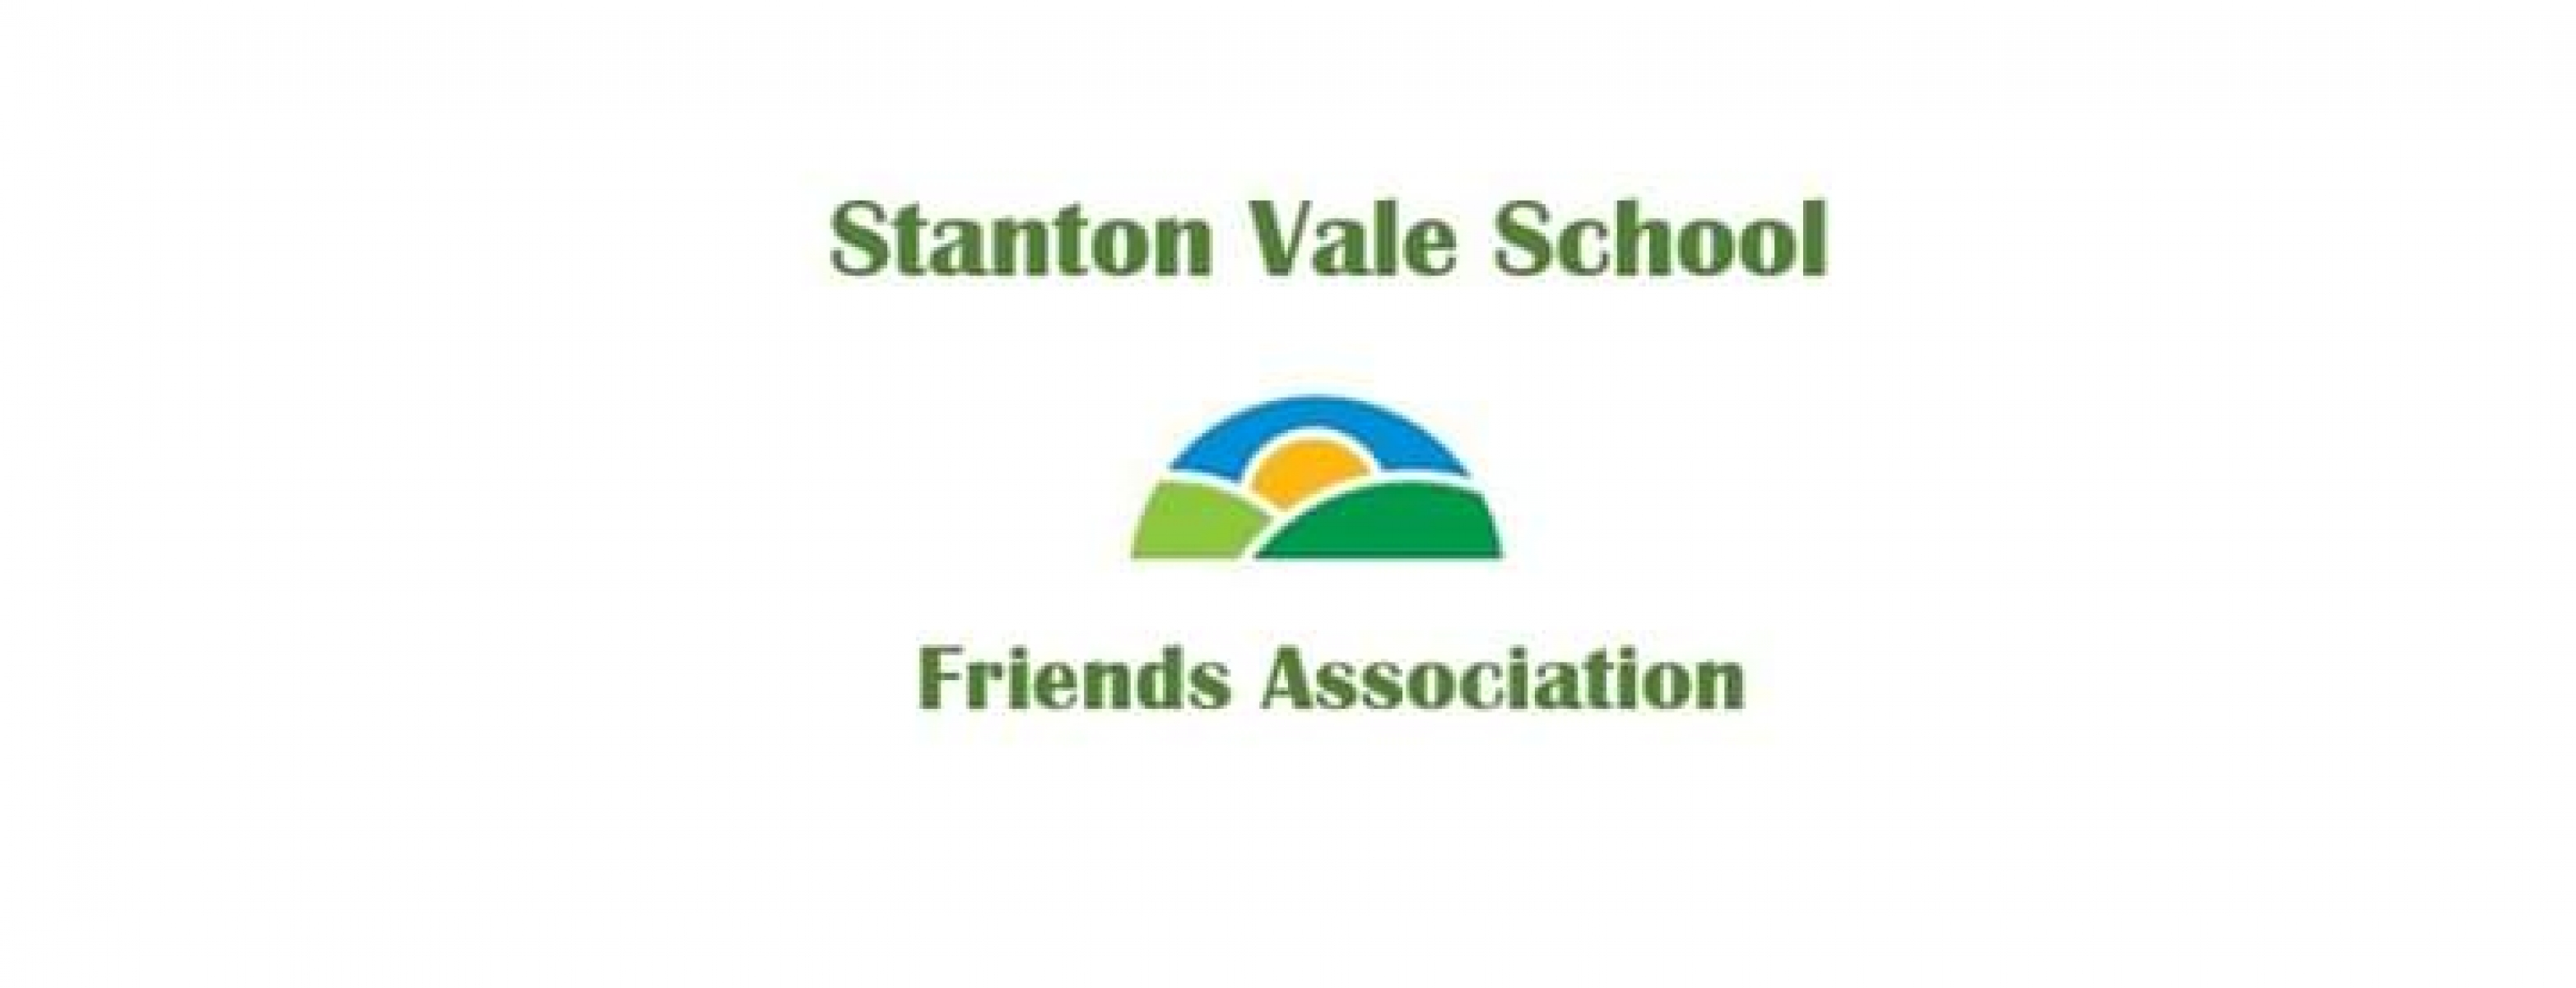 Stanton Vale Friends Association eCards